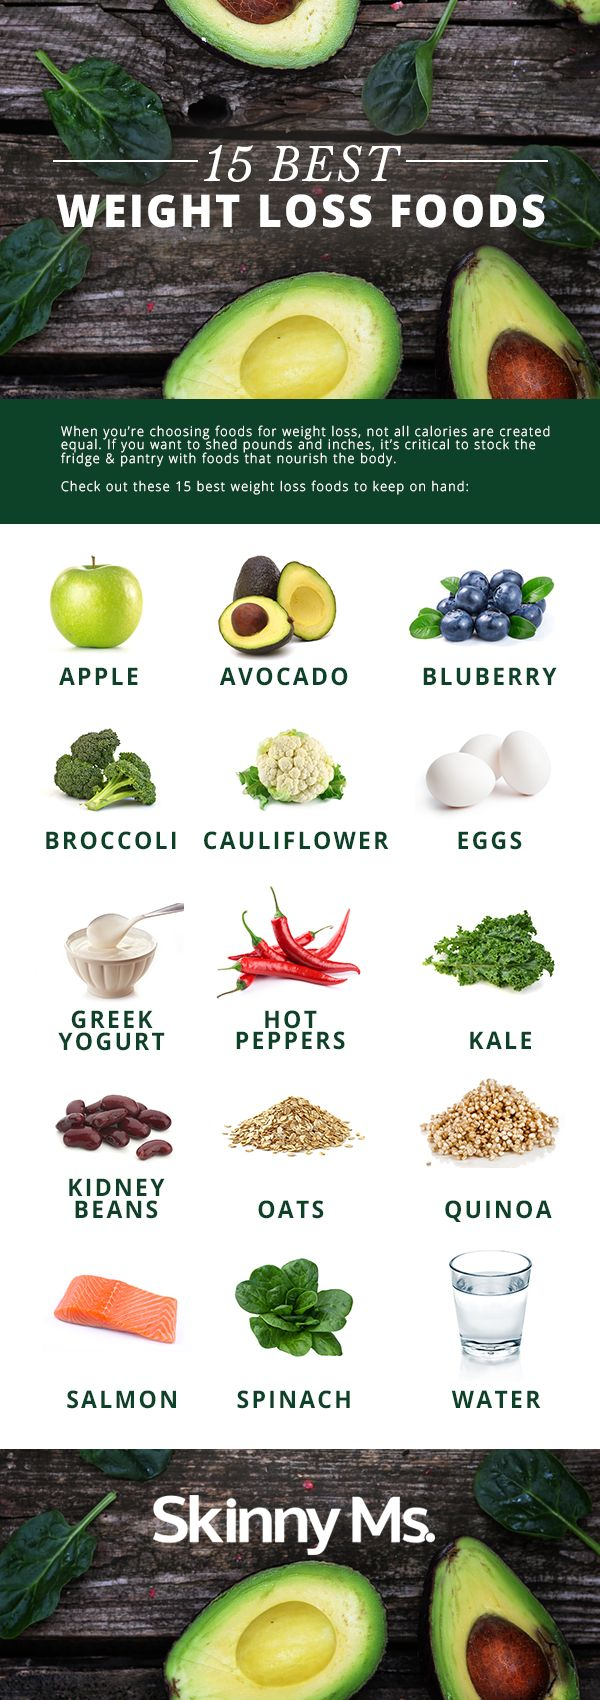 15-Best-Weight-Loss-Foods1